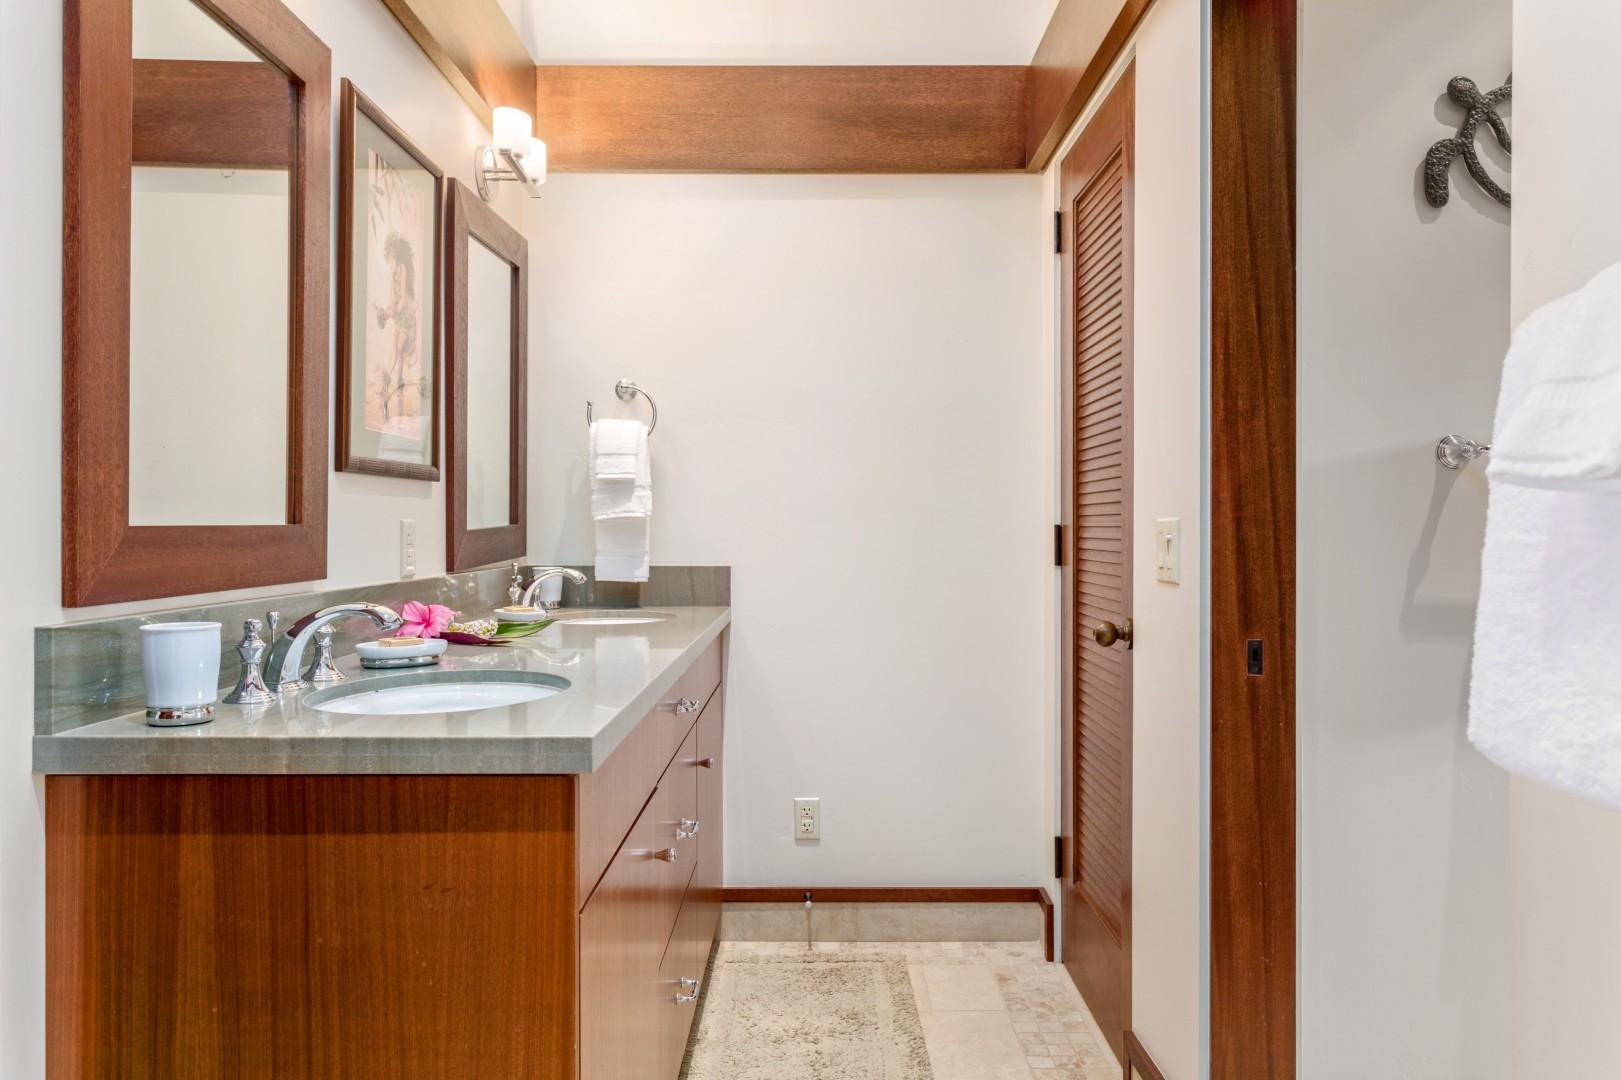 Large Jack-and-Jill-style bathroom with dual vanity, soaking tub, walk-in shower, and separate commode.